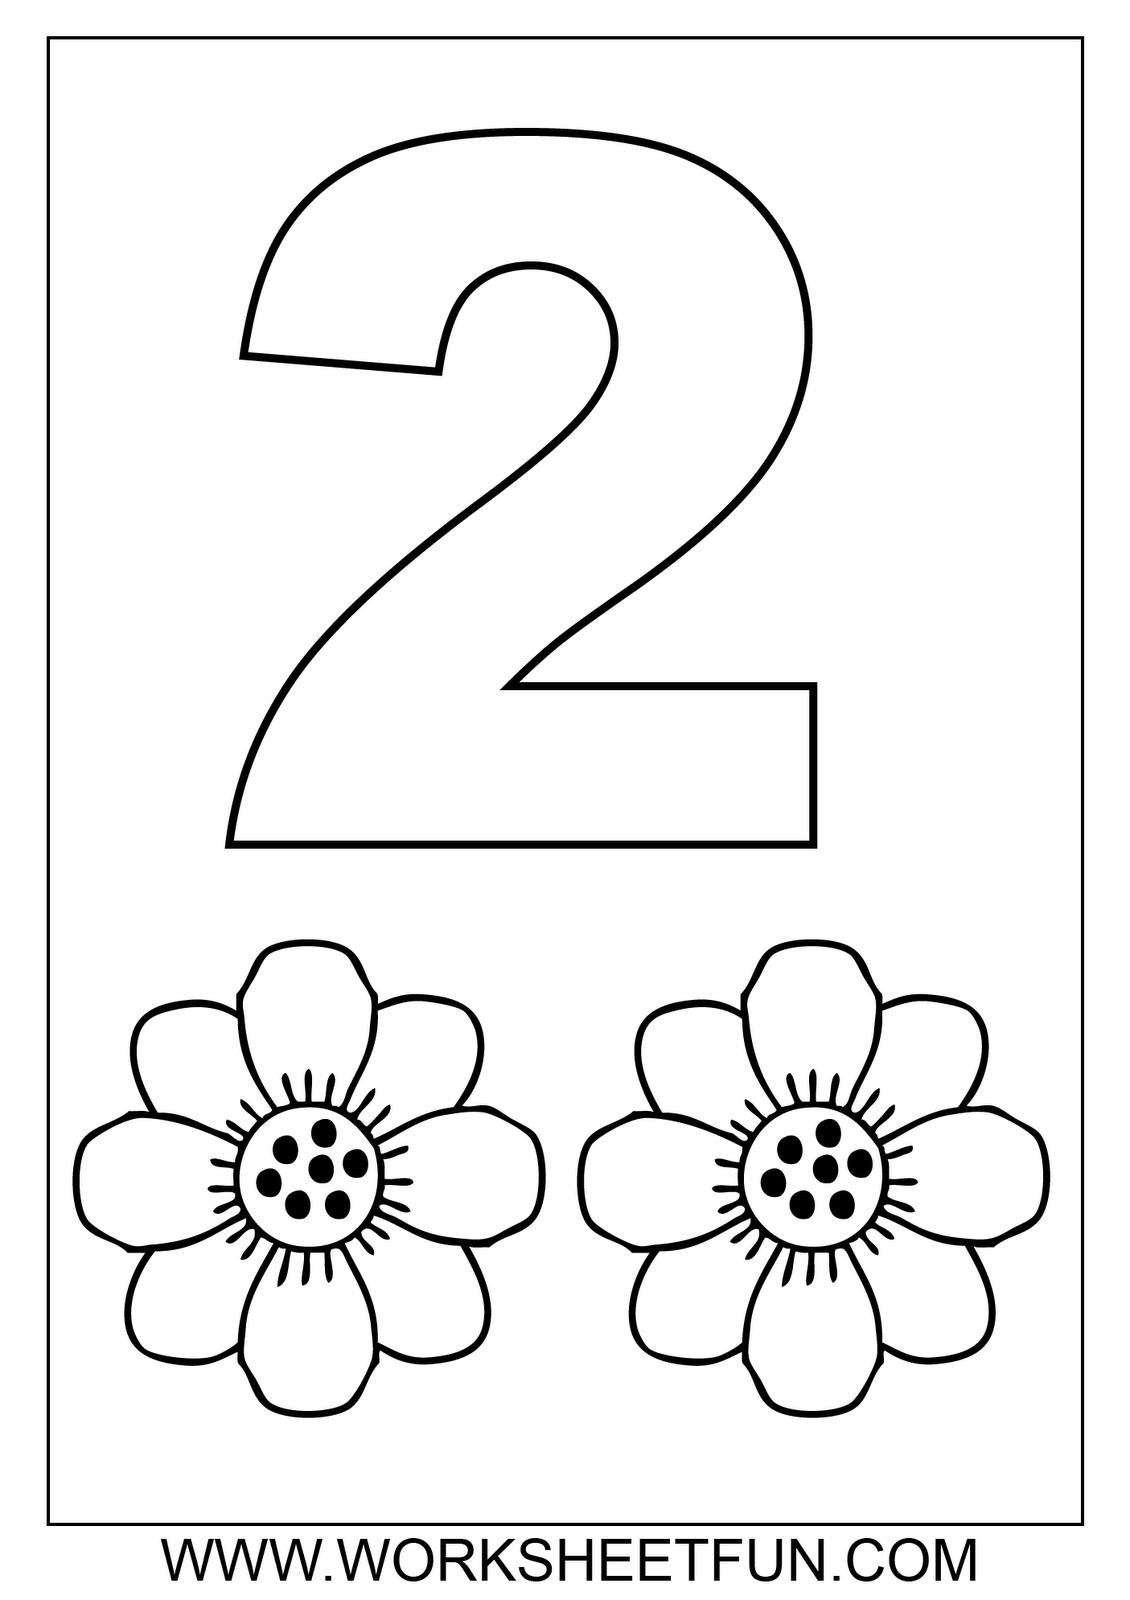 Colouring on worksheets - Preschool Number Coloring Pages Download Coloring Page